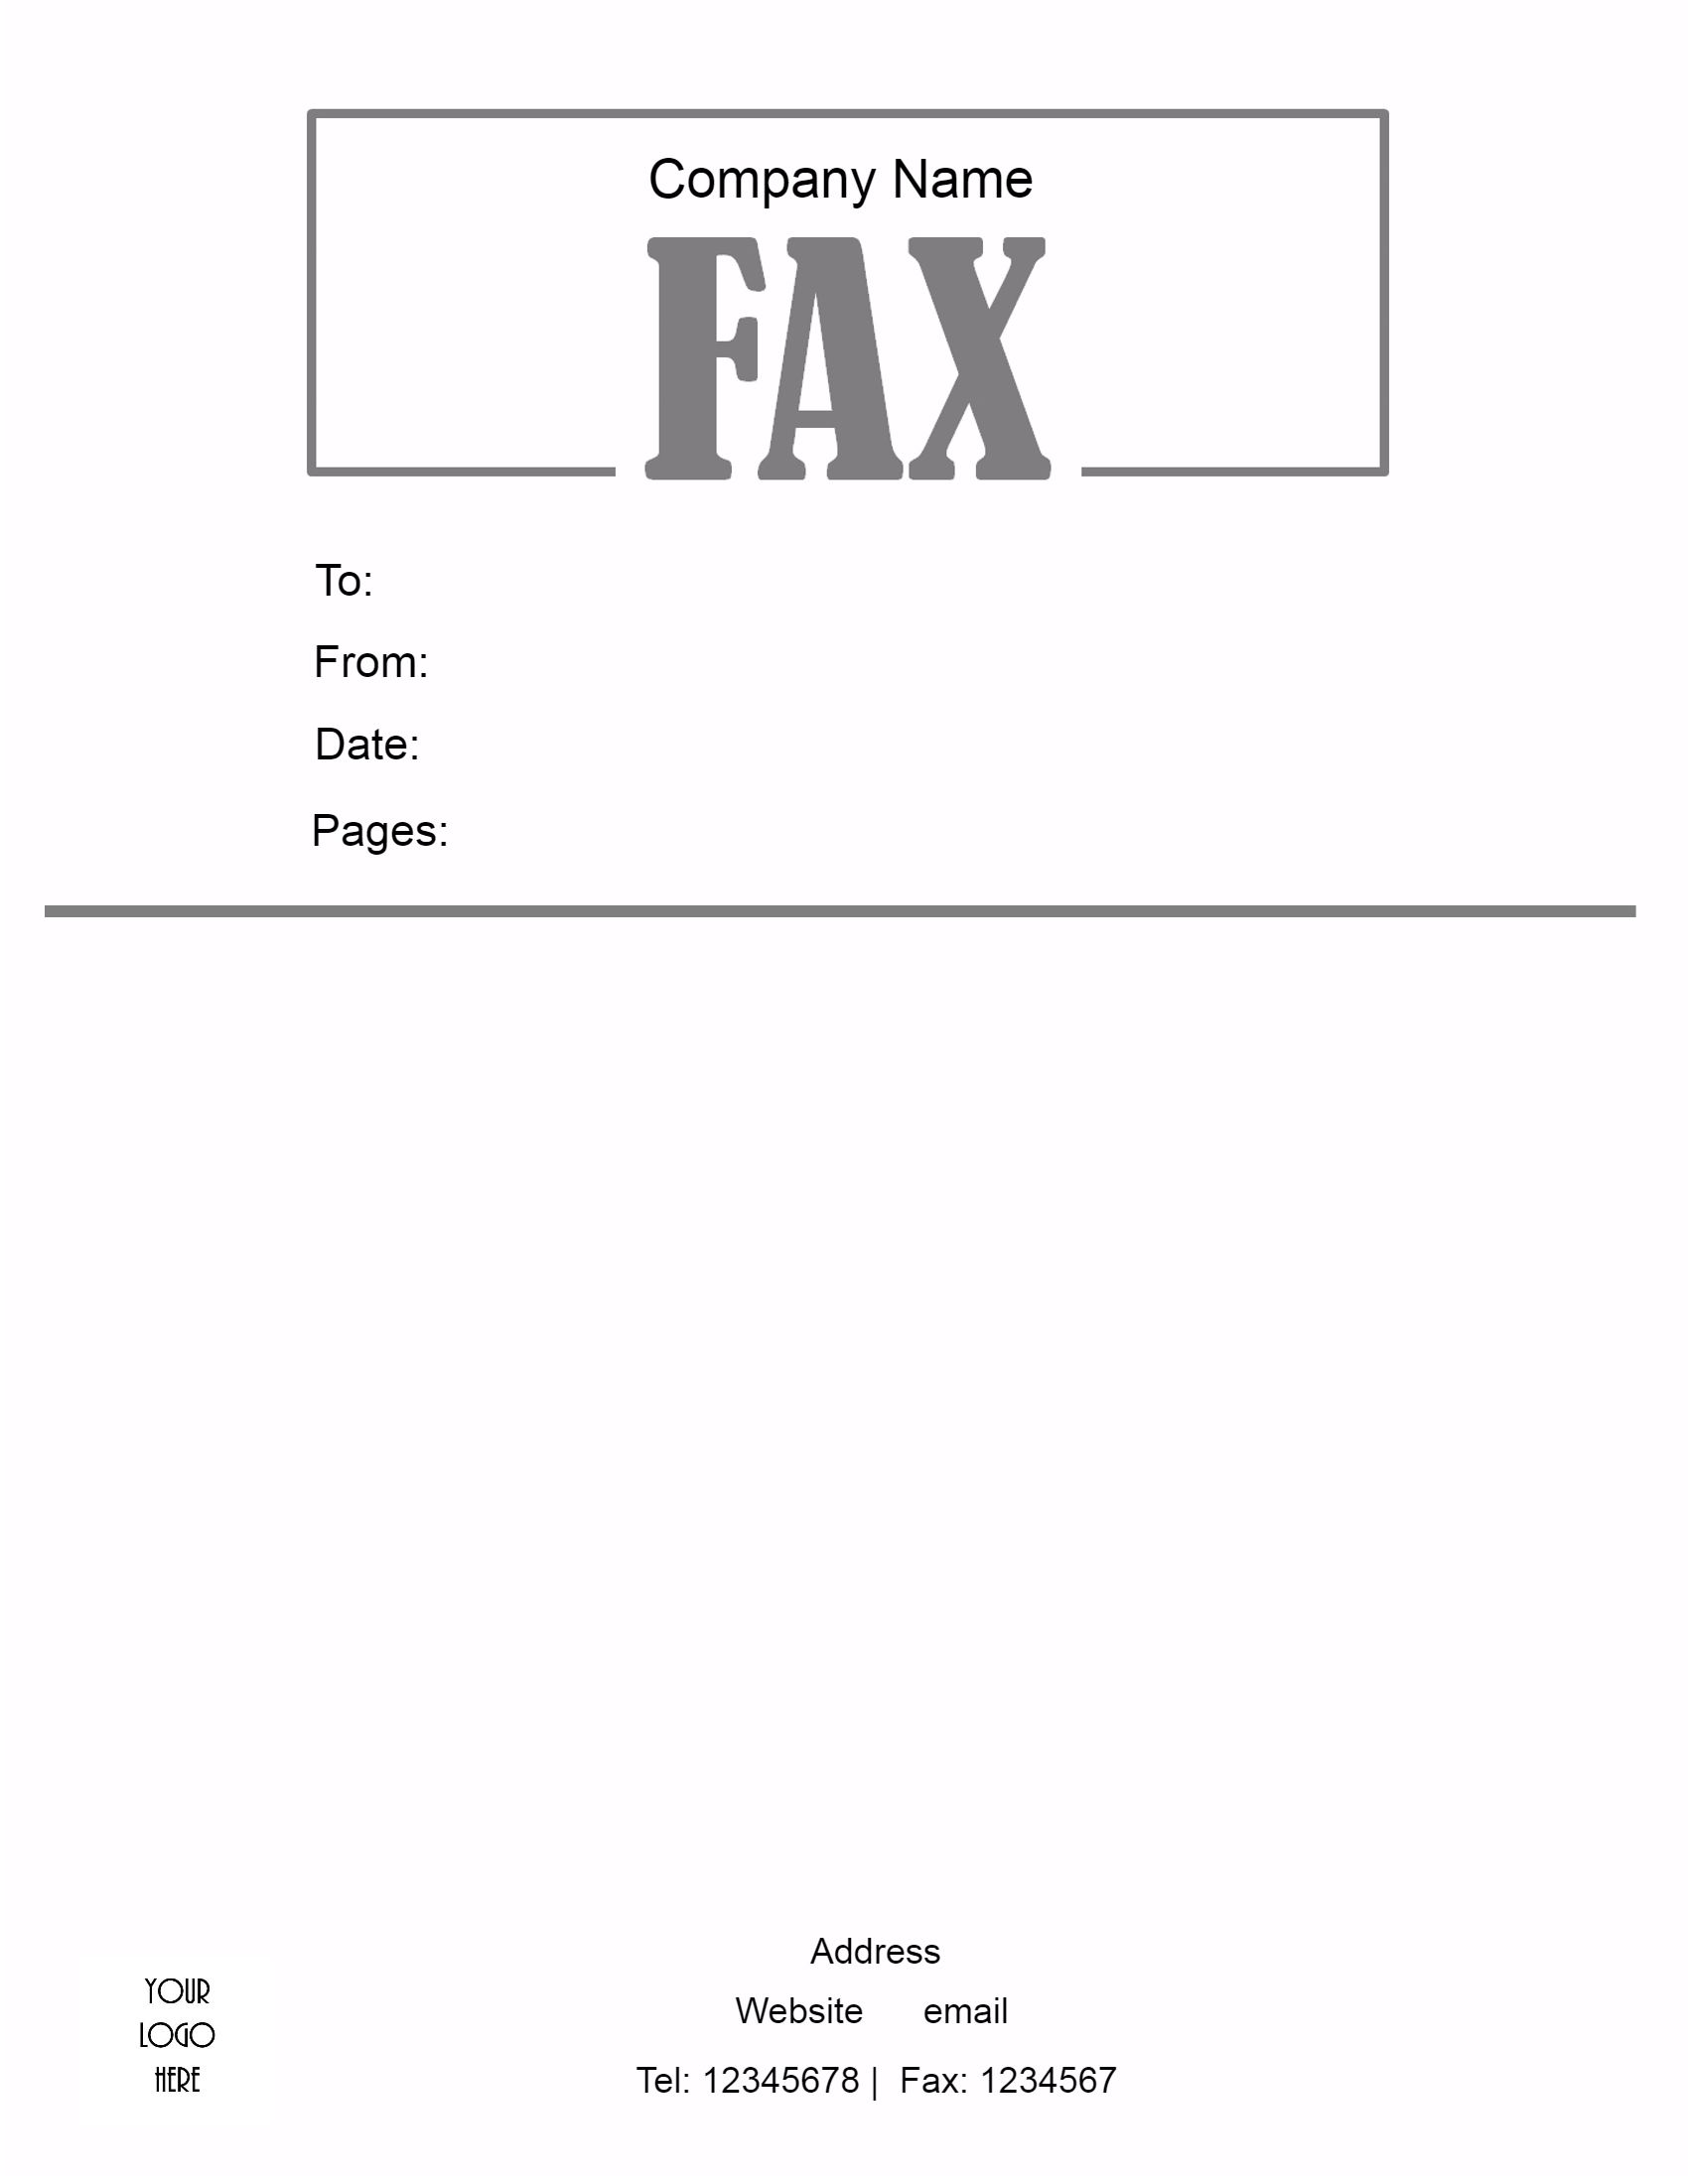 choose a fax cover letter template